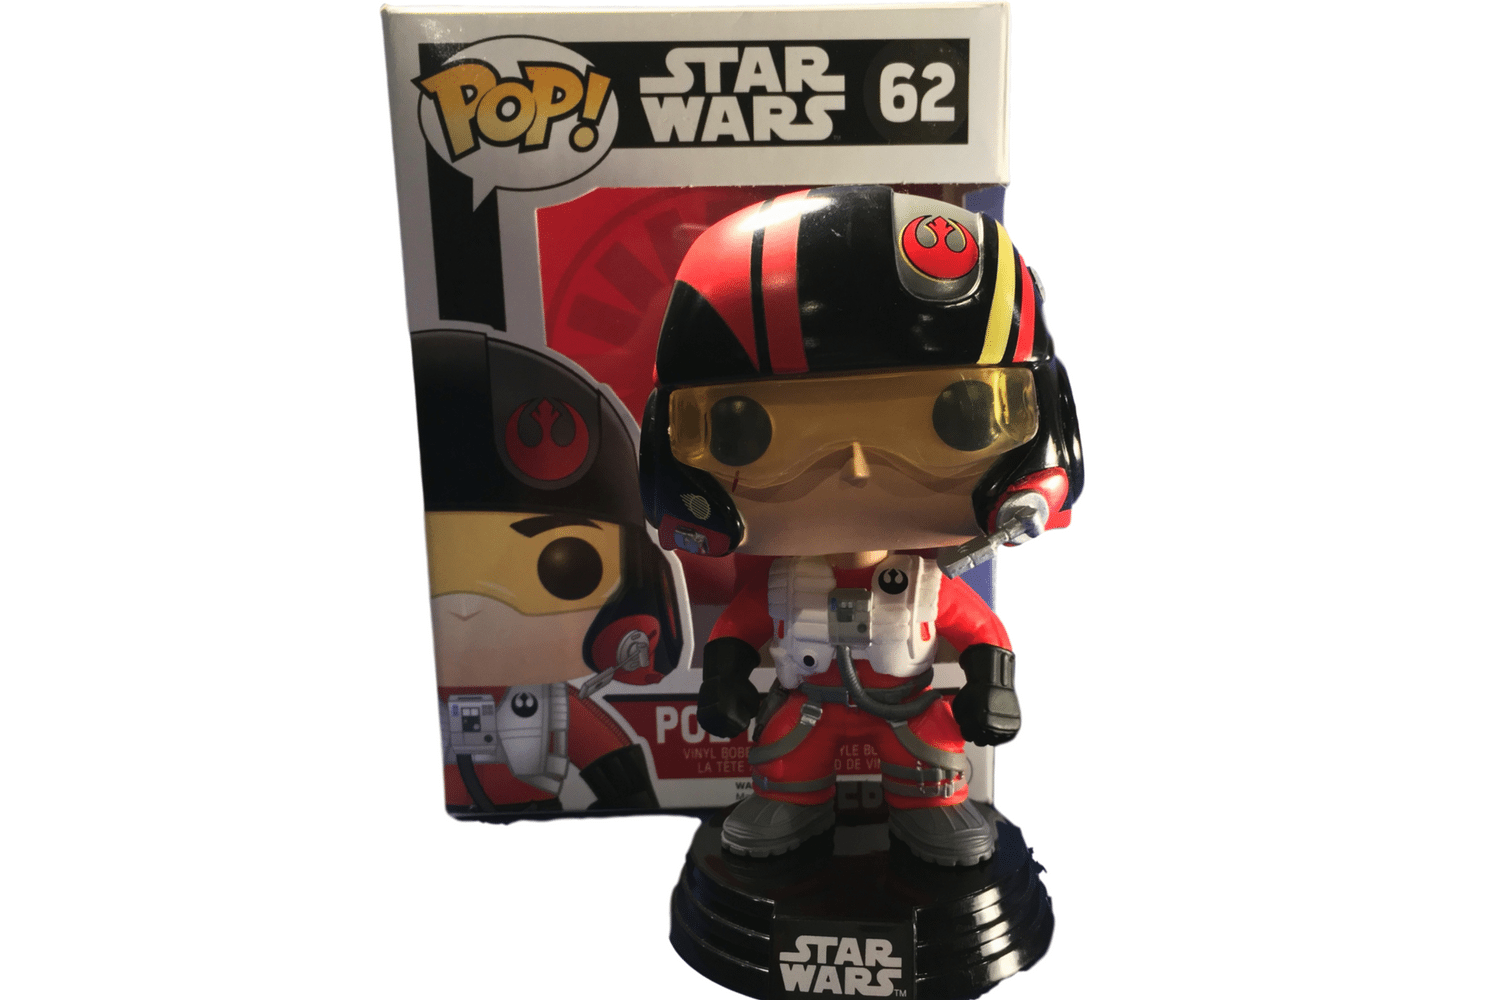 Funko Pop! Star Wars Guide #62 Poe Dameron